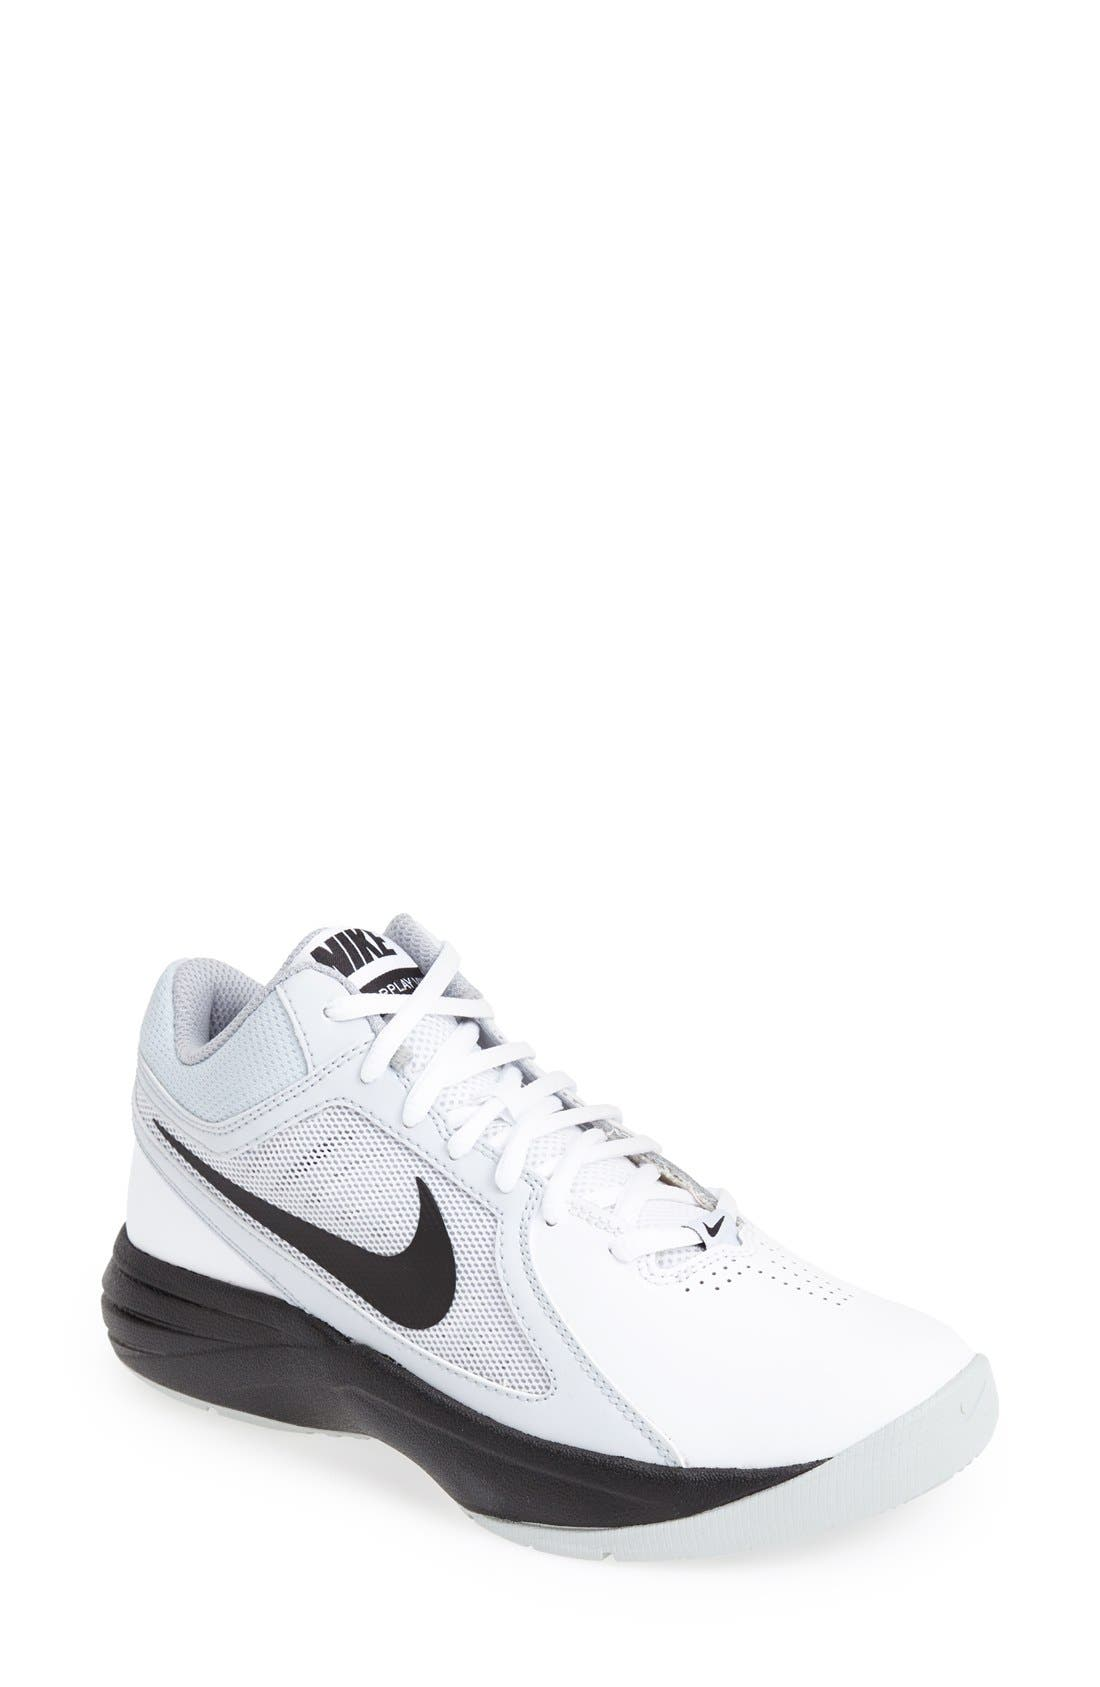 Main Image - Nike 'Overplay VIII' Basketball Shoe (Women)